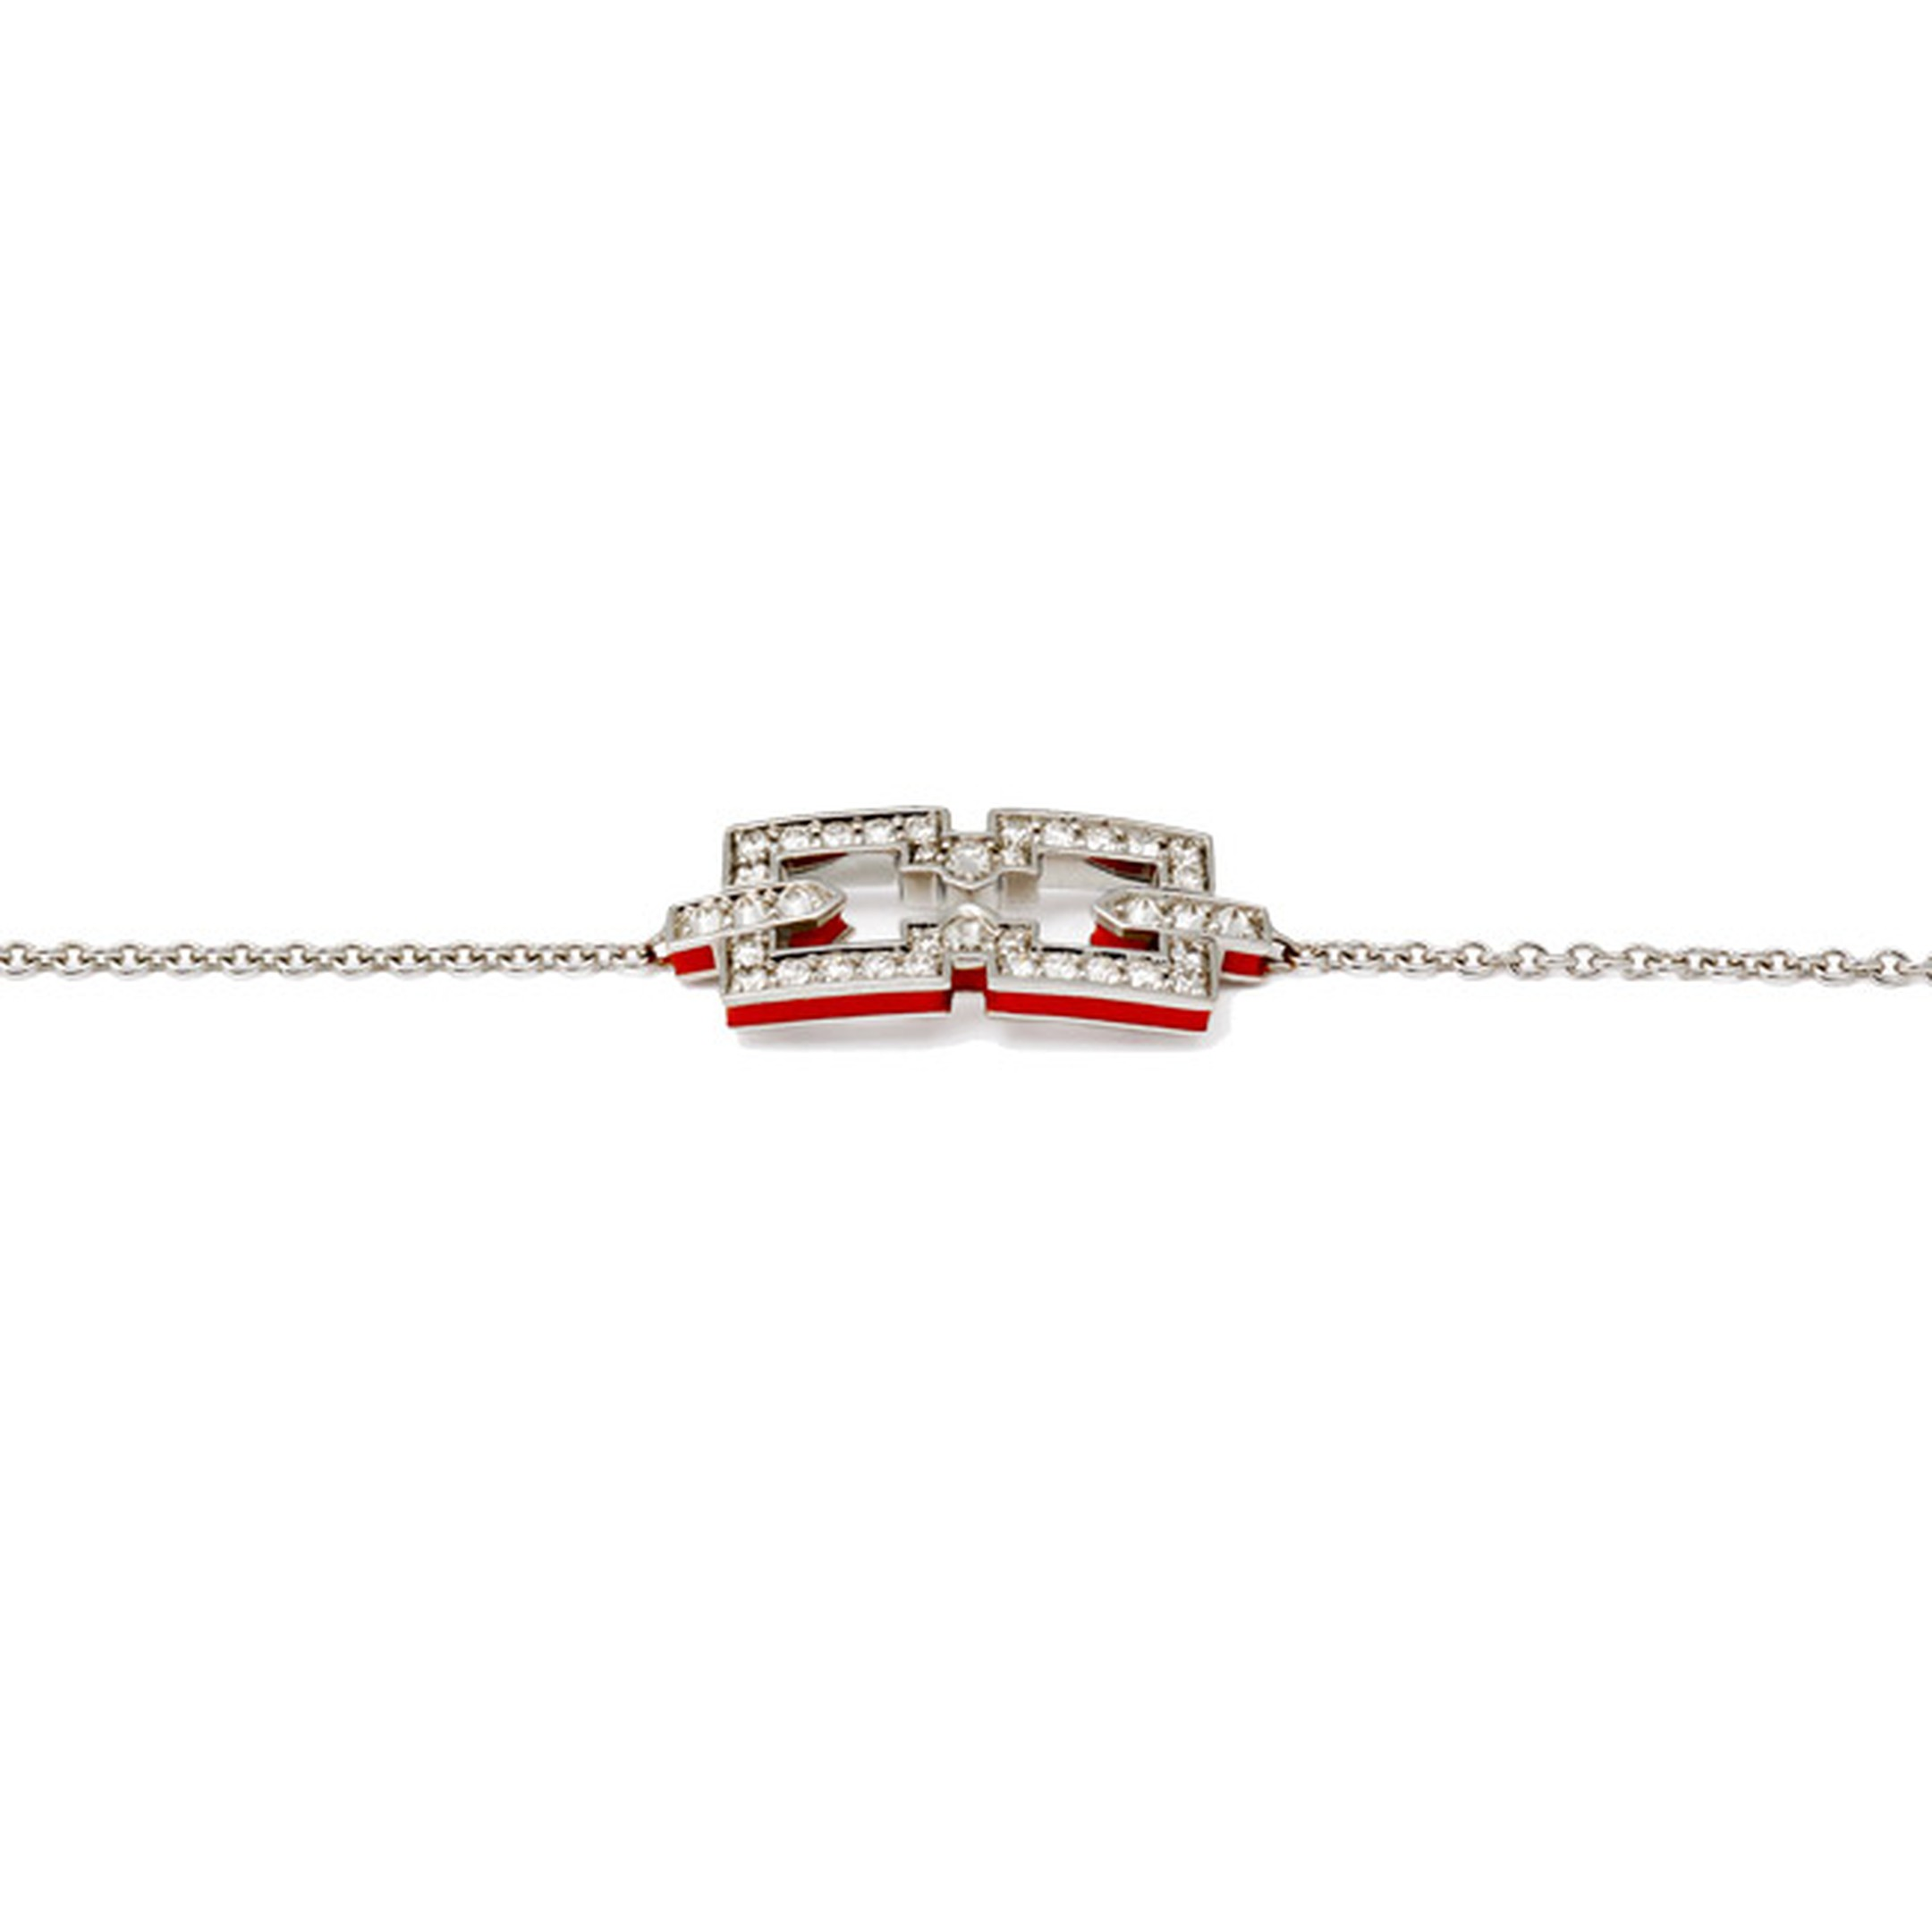 Raphaele Canot Skinny Deco bracelet in white gold with pavé white diamonds and a sliver of red enamel (£1,800).